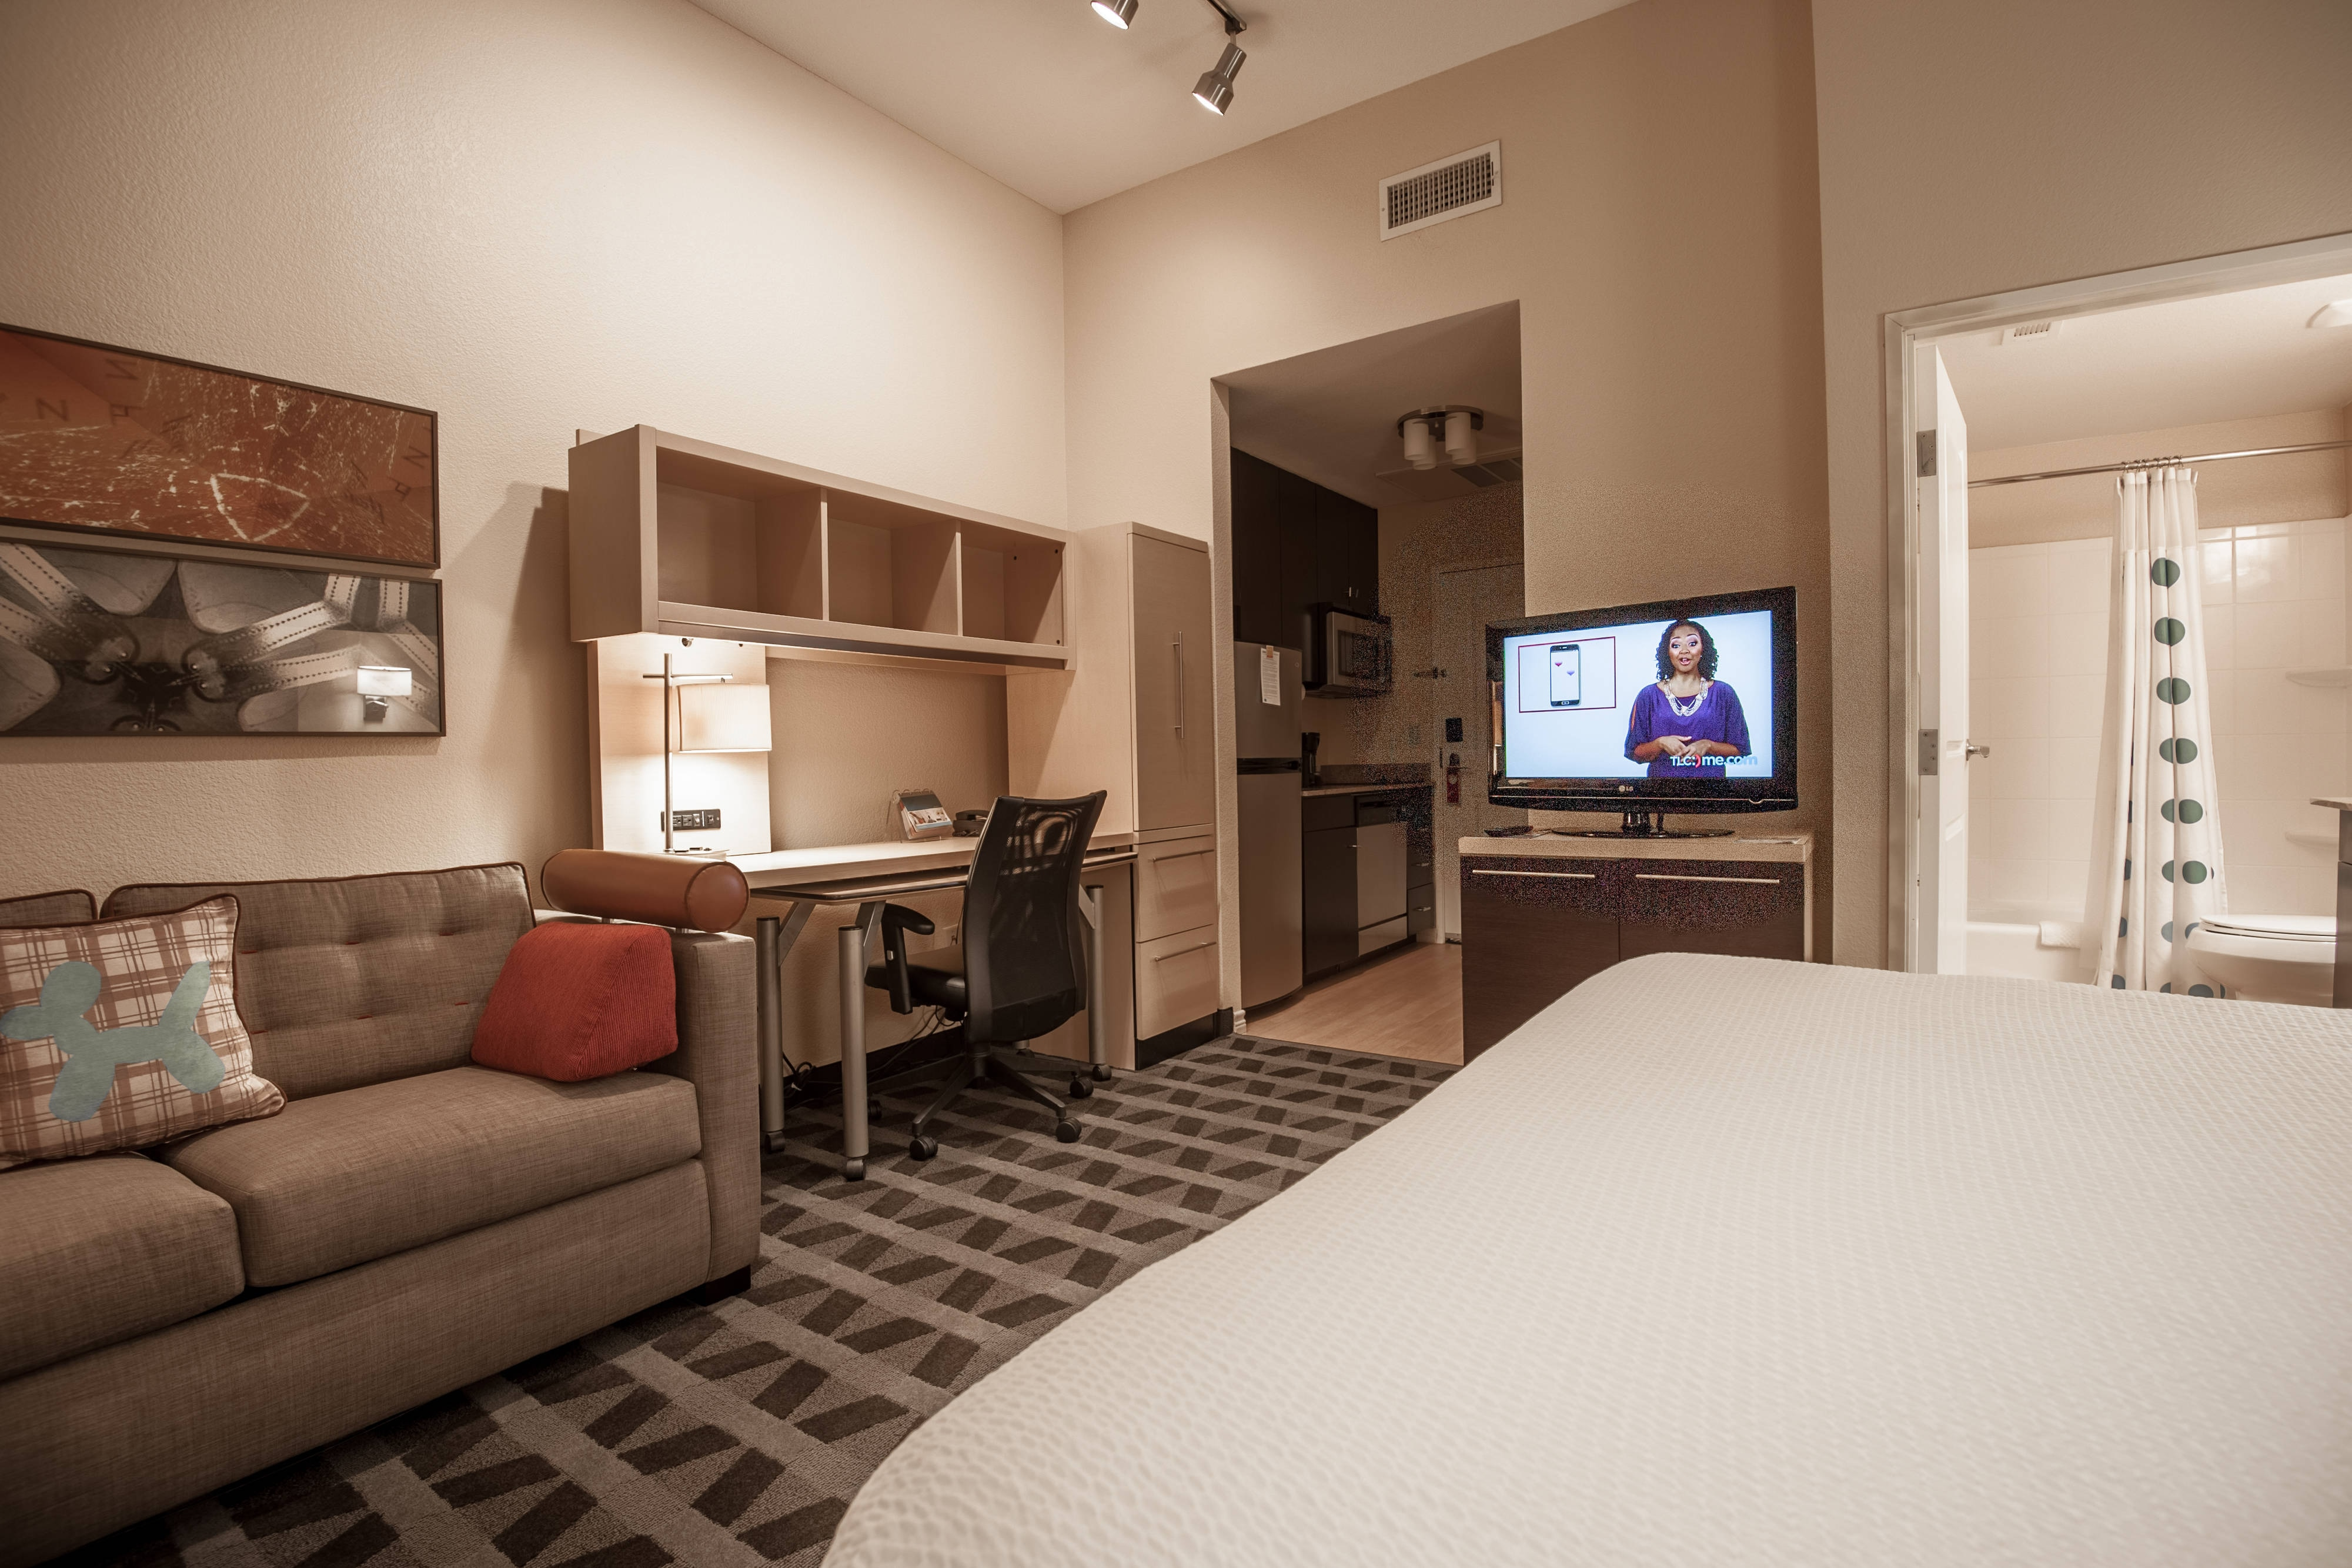 1 And 2 Bedroom Hotel Suites In Dallas Tx Towneplace